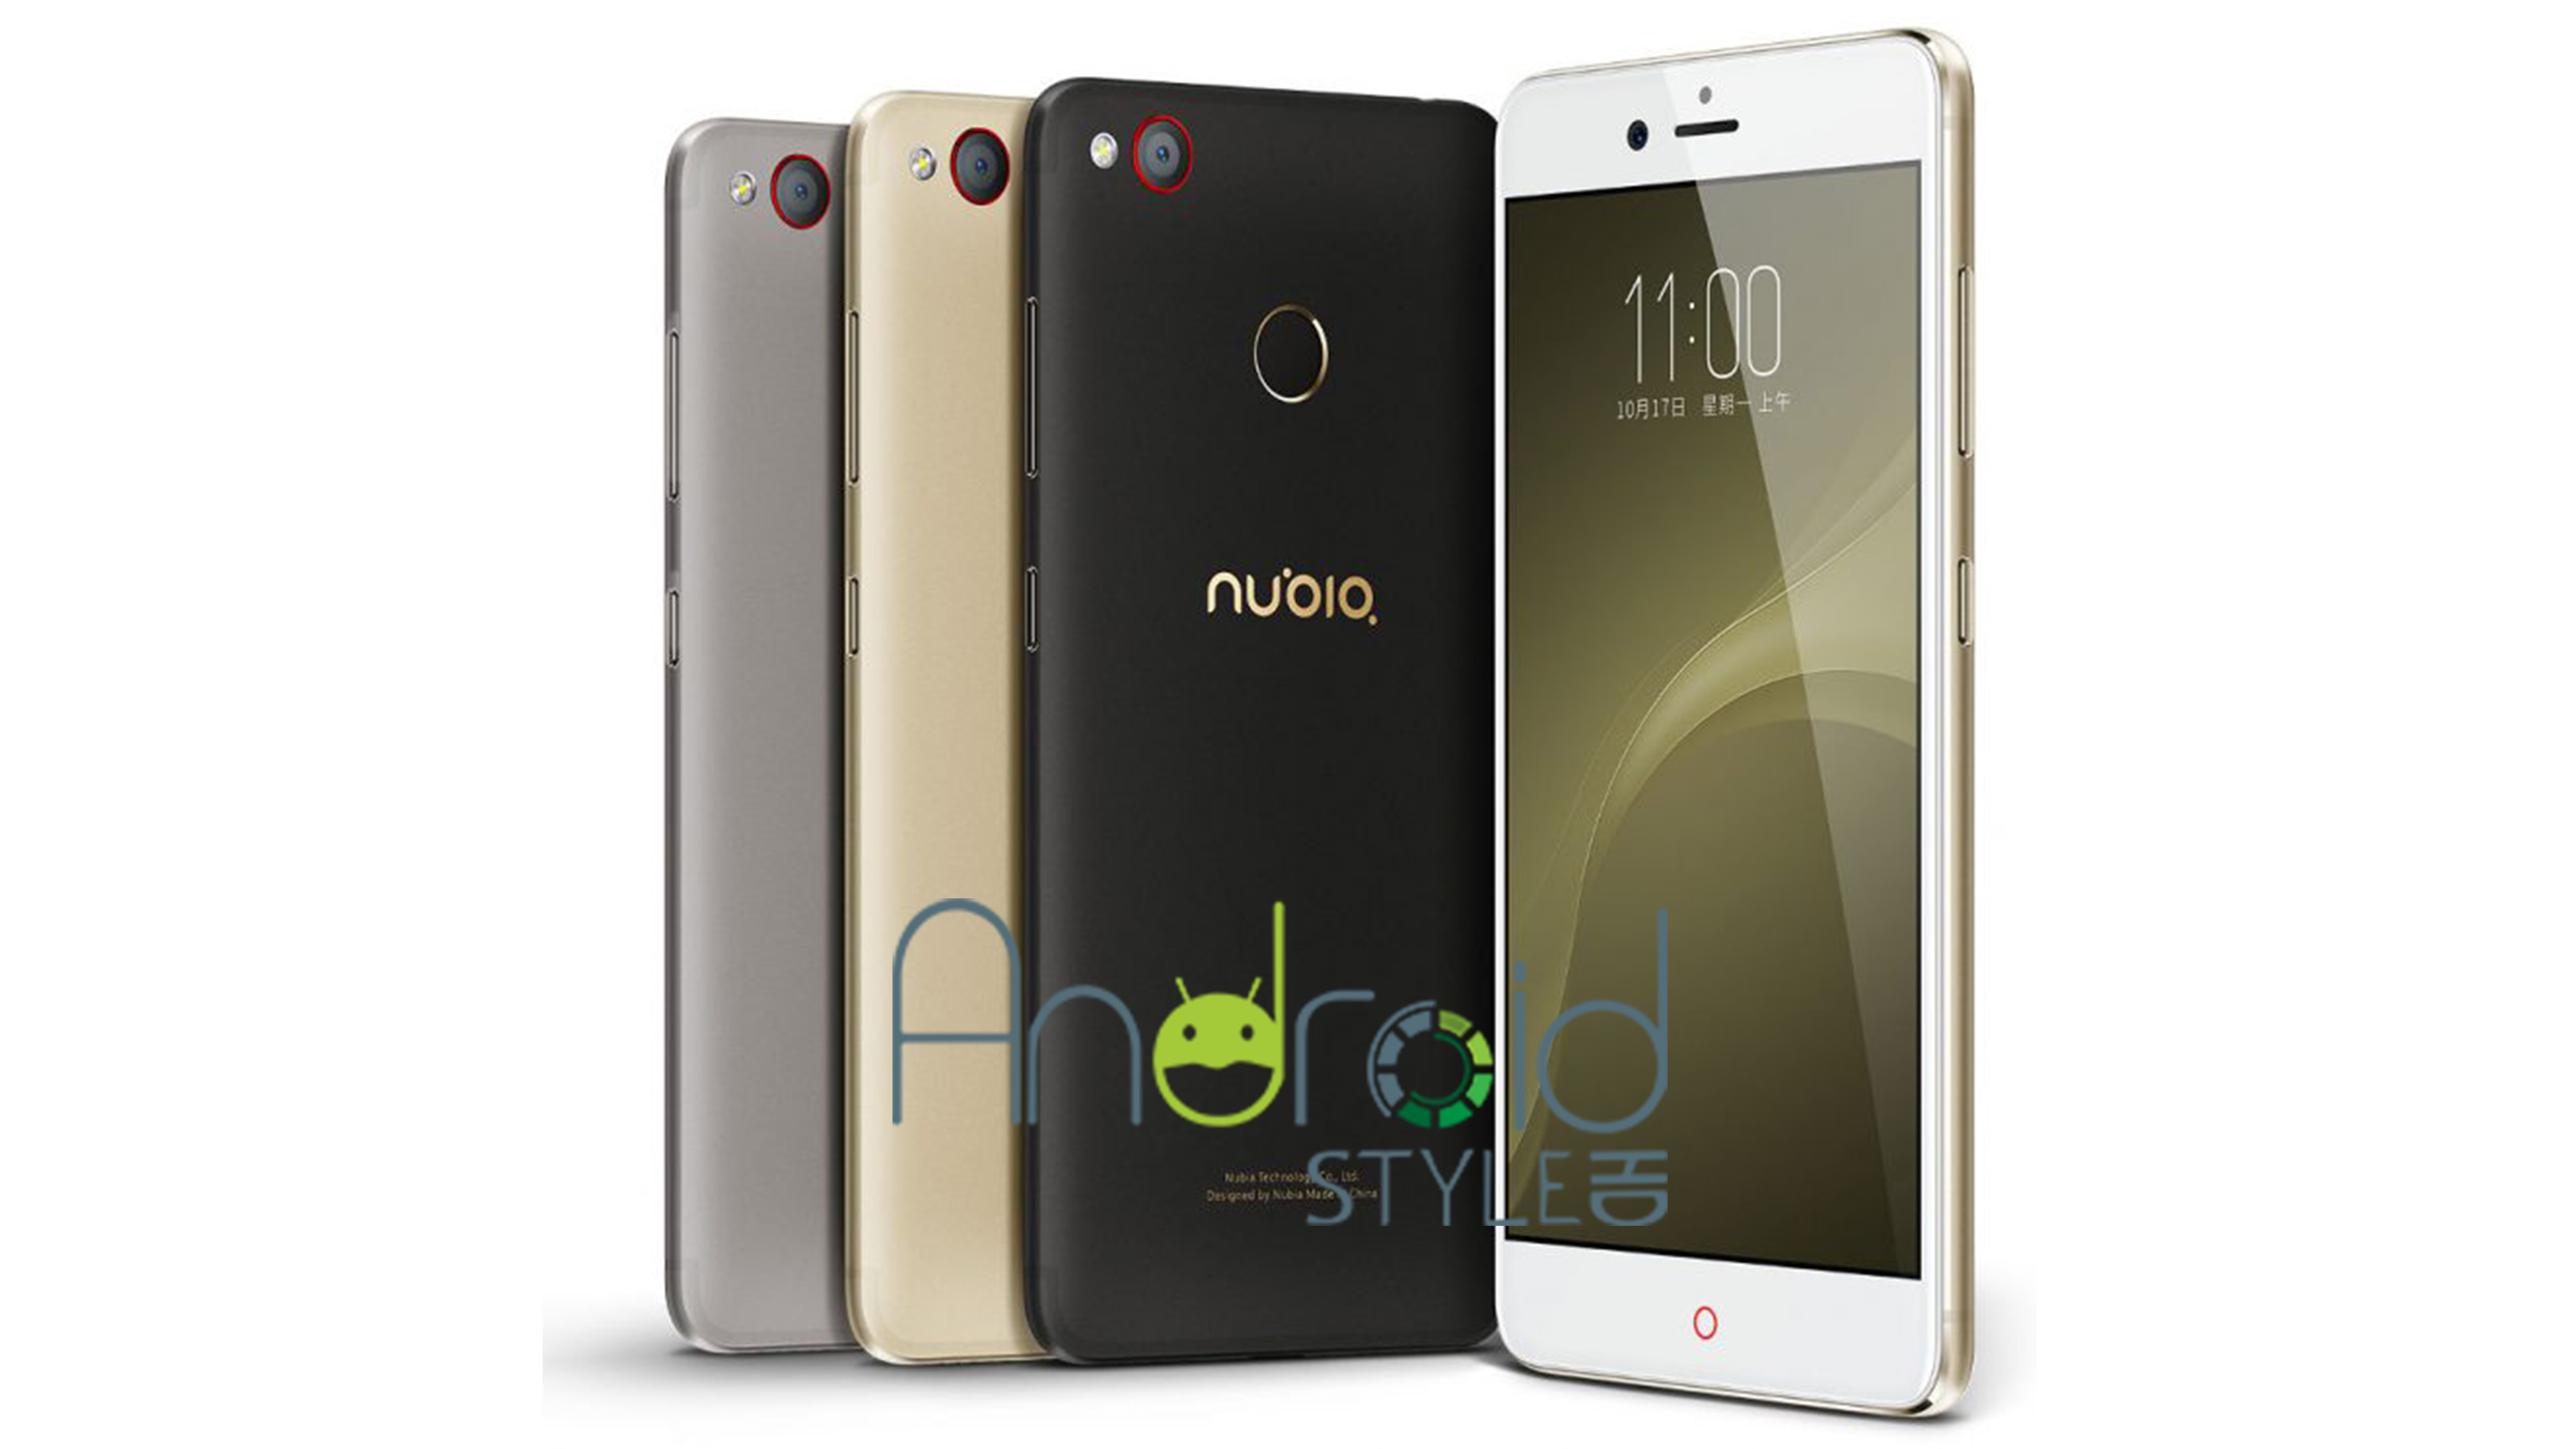 Nubia Z11 Mini S un telefono entry level con fotocamera e specifiche tecniche prestanti